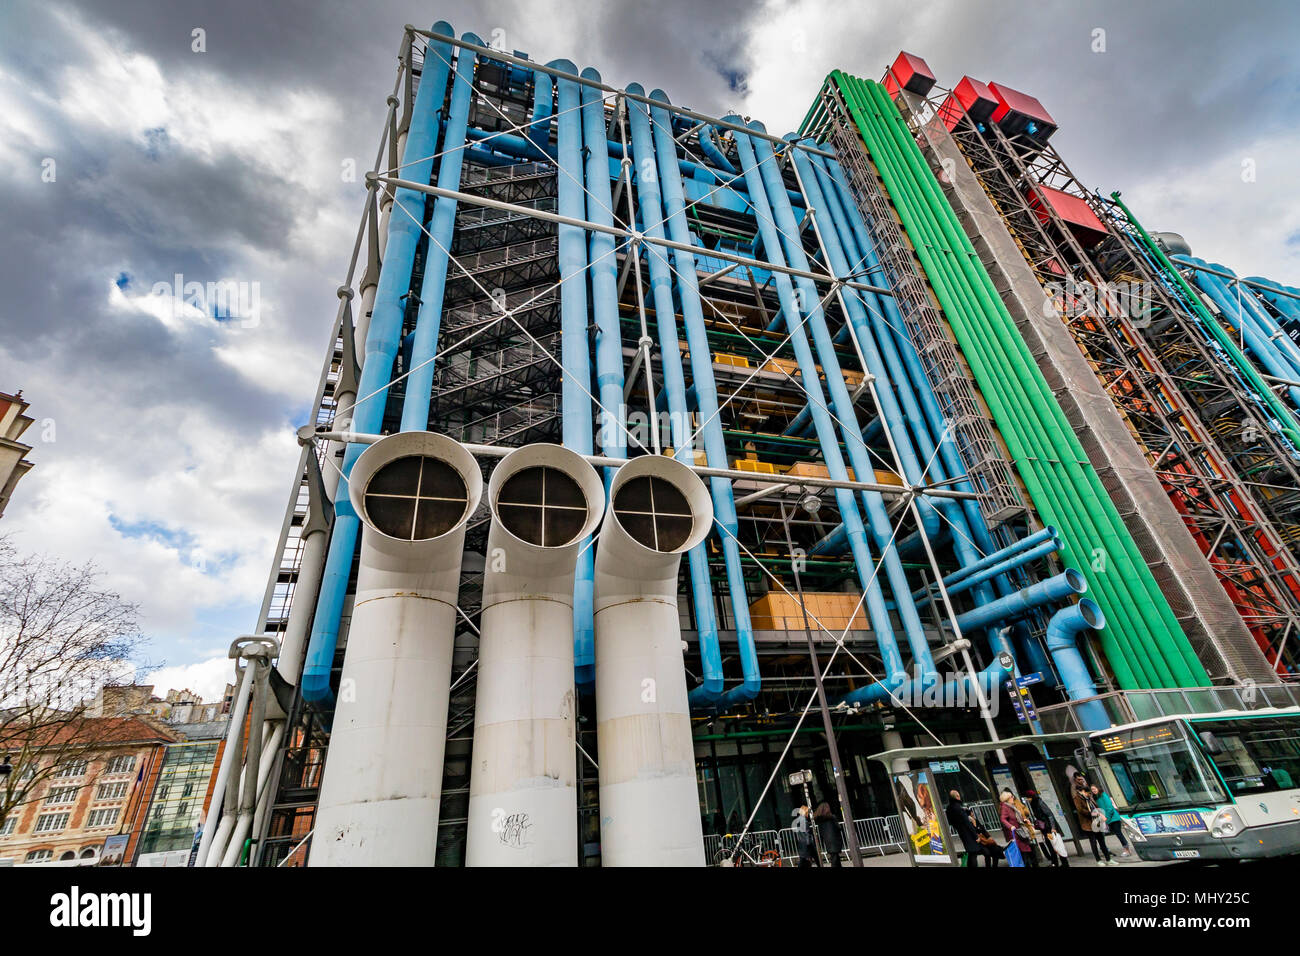 Couleurs primaires et des tuyauteries et airducts du Centre Georges Pompidou, Paris, France Photo Stock